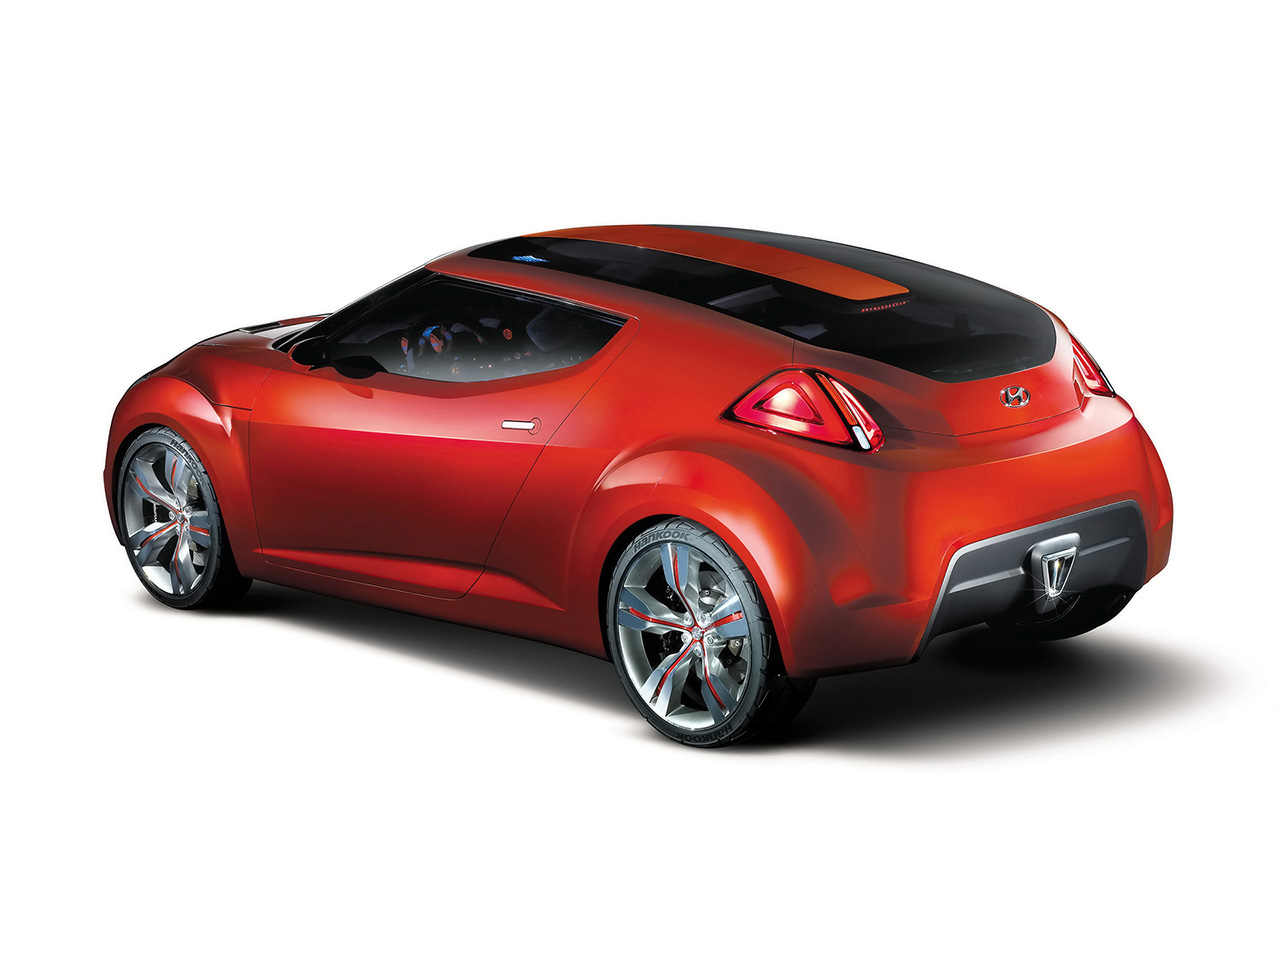 hyundai veloster concept 2 2011 Hyundai Veloster Concept   Photos, Specifications, Price, Reviews